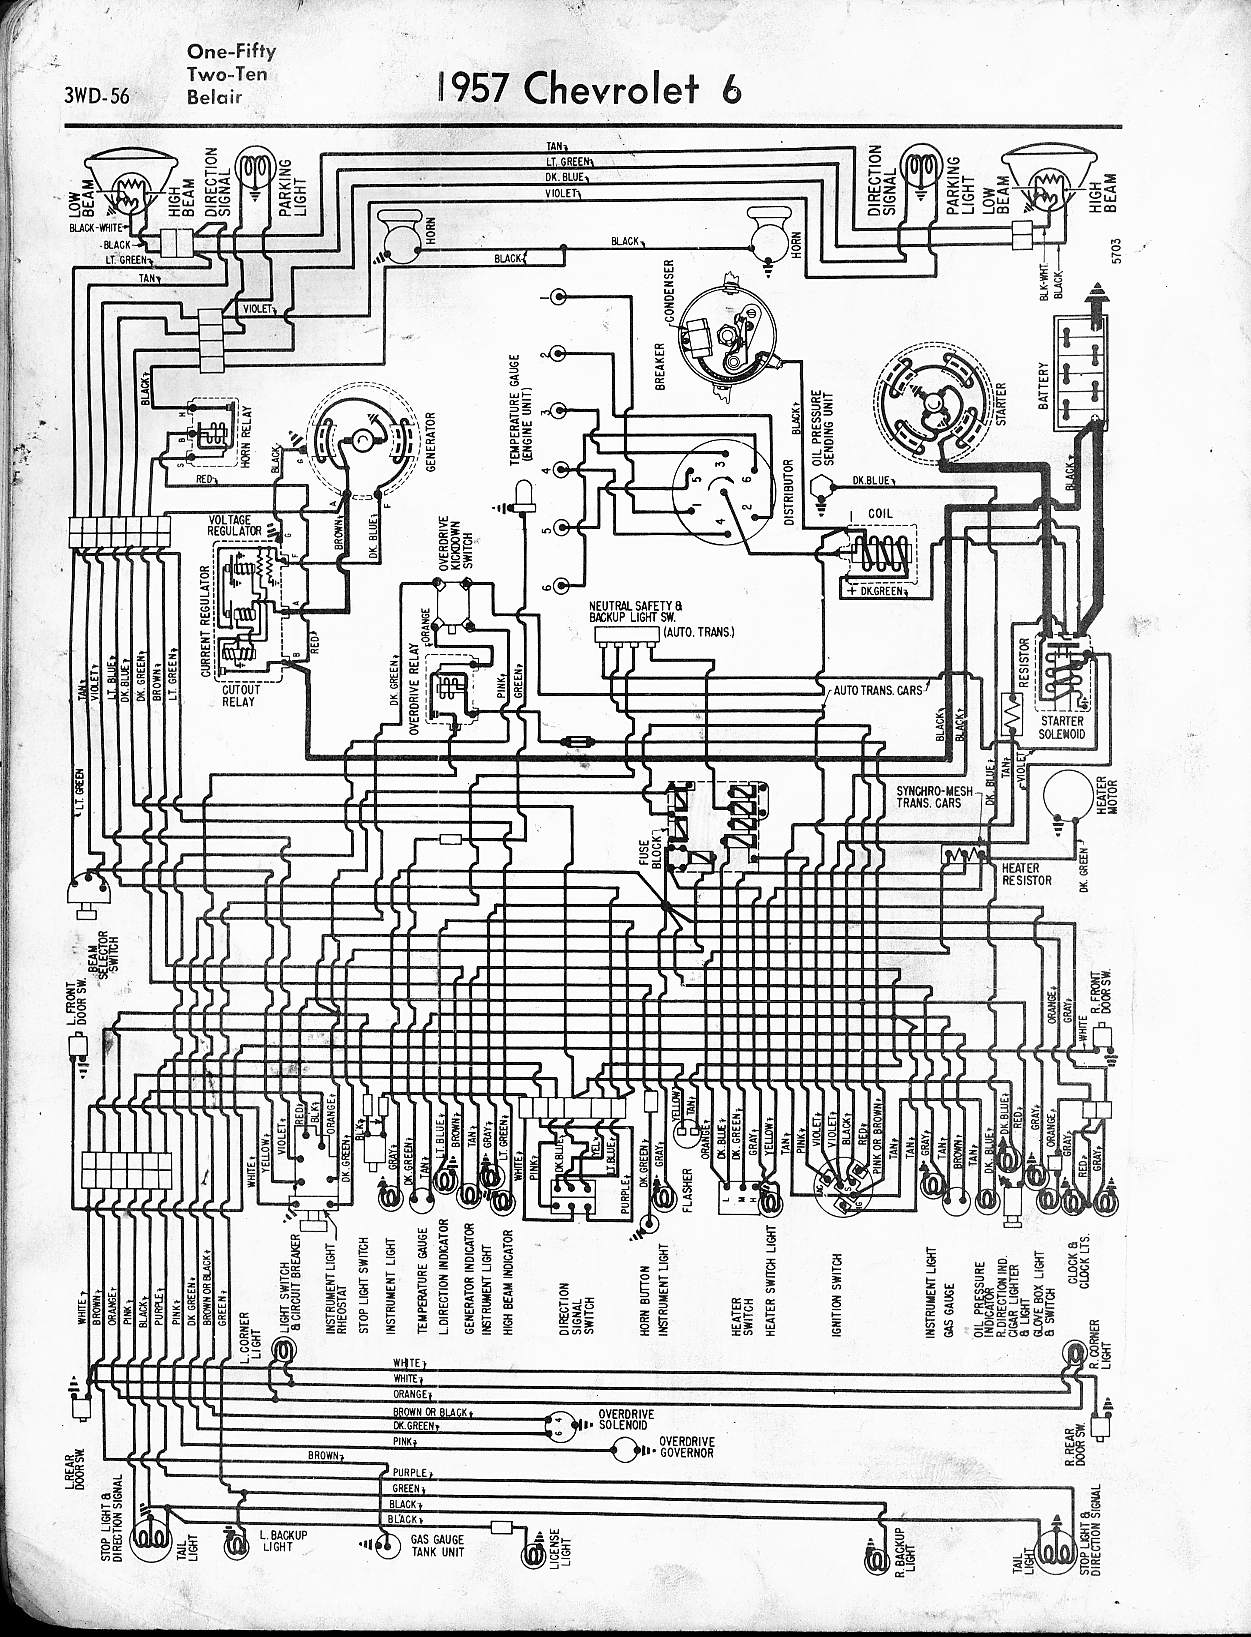 1957 Chevy Truck Wiring Diagram Archive Of Automotive For 57 Bel Air Horn Electrical Diagrams Schematics Rh Glenifferagility Co Uk Headlight Switch